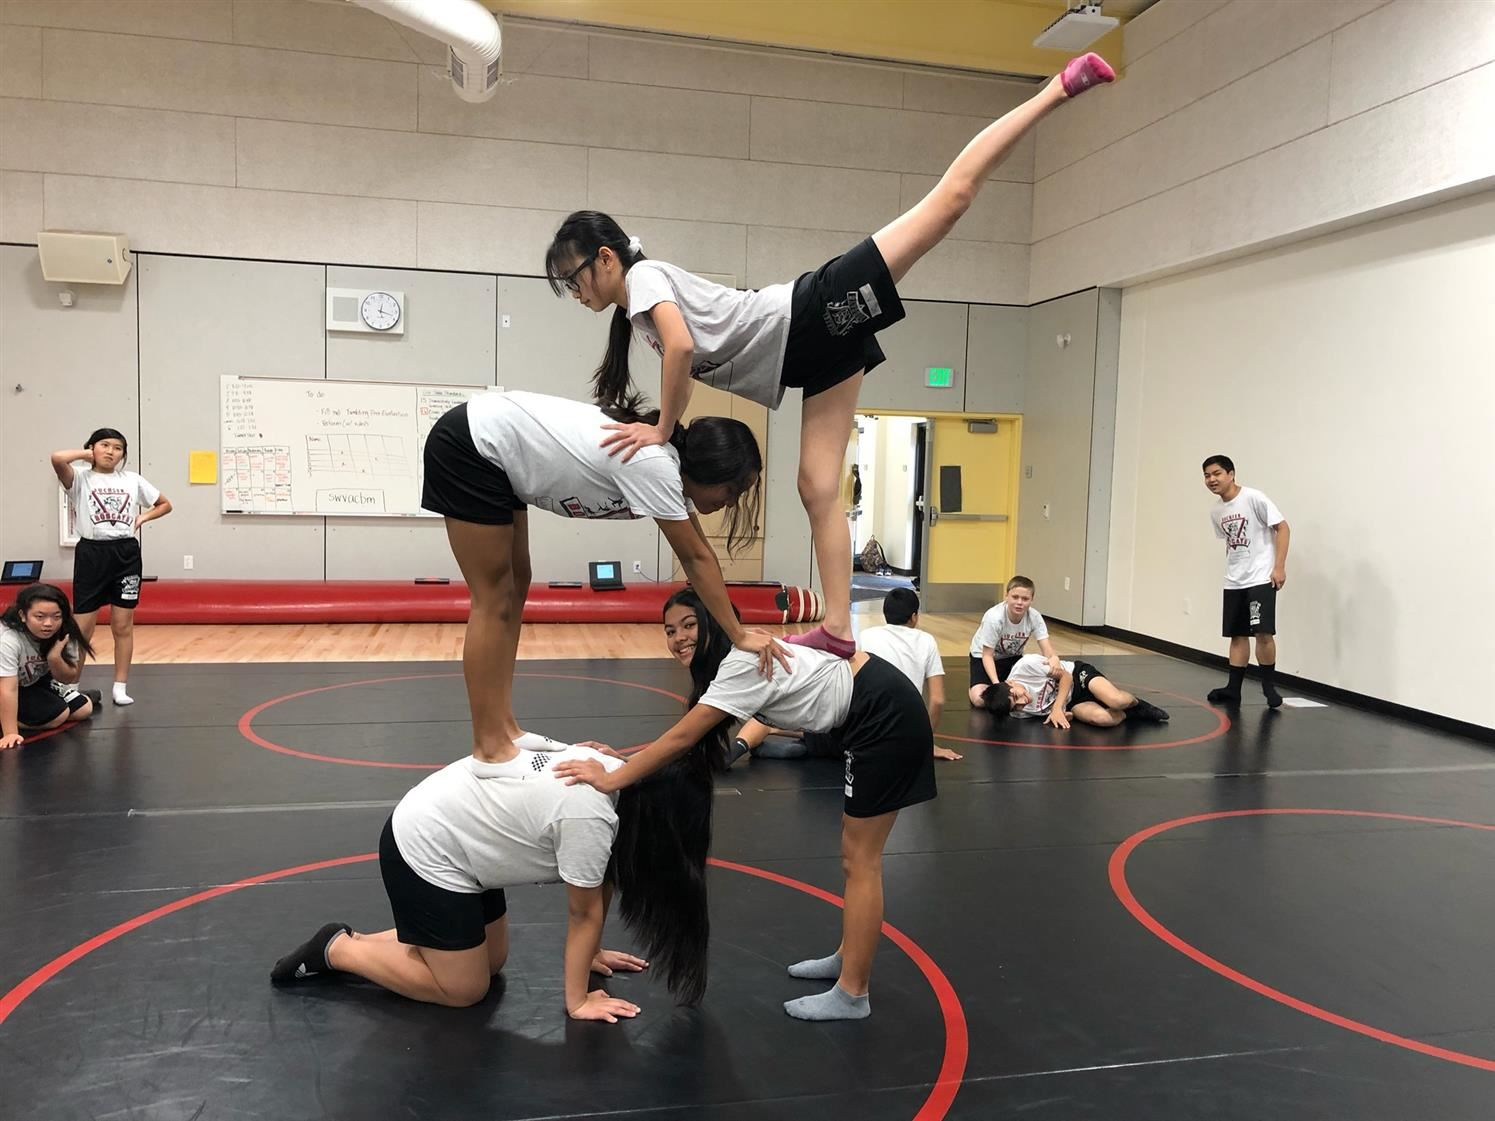 Physical Education Students practice tumbling